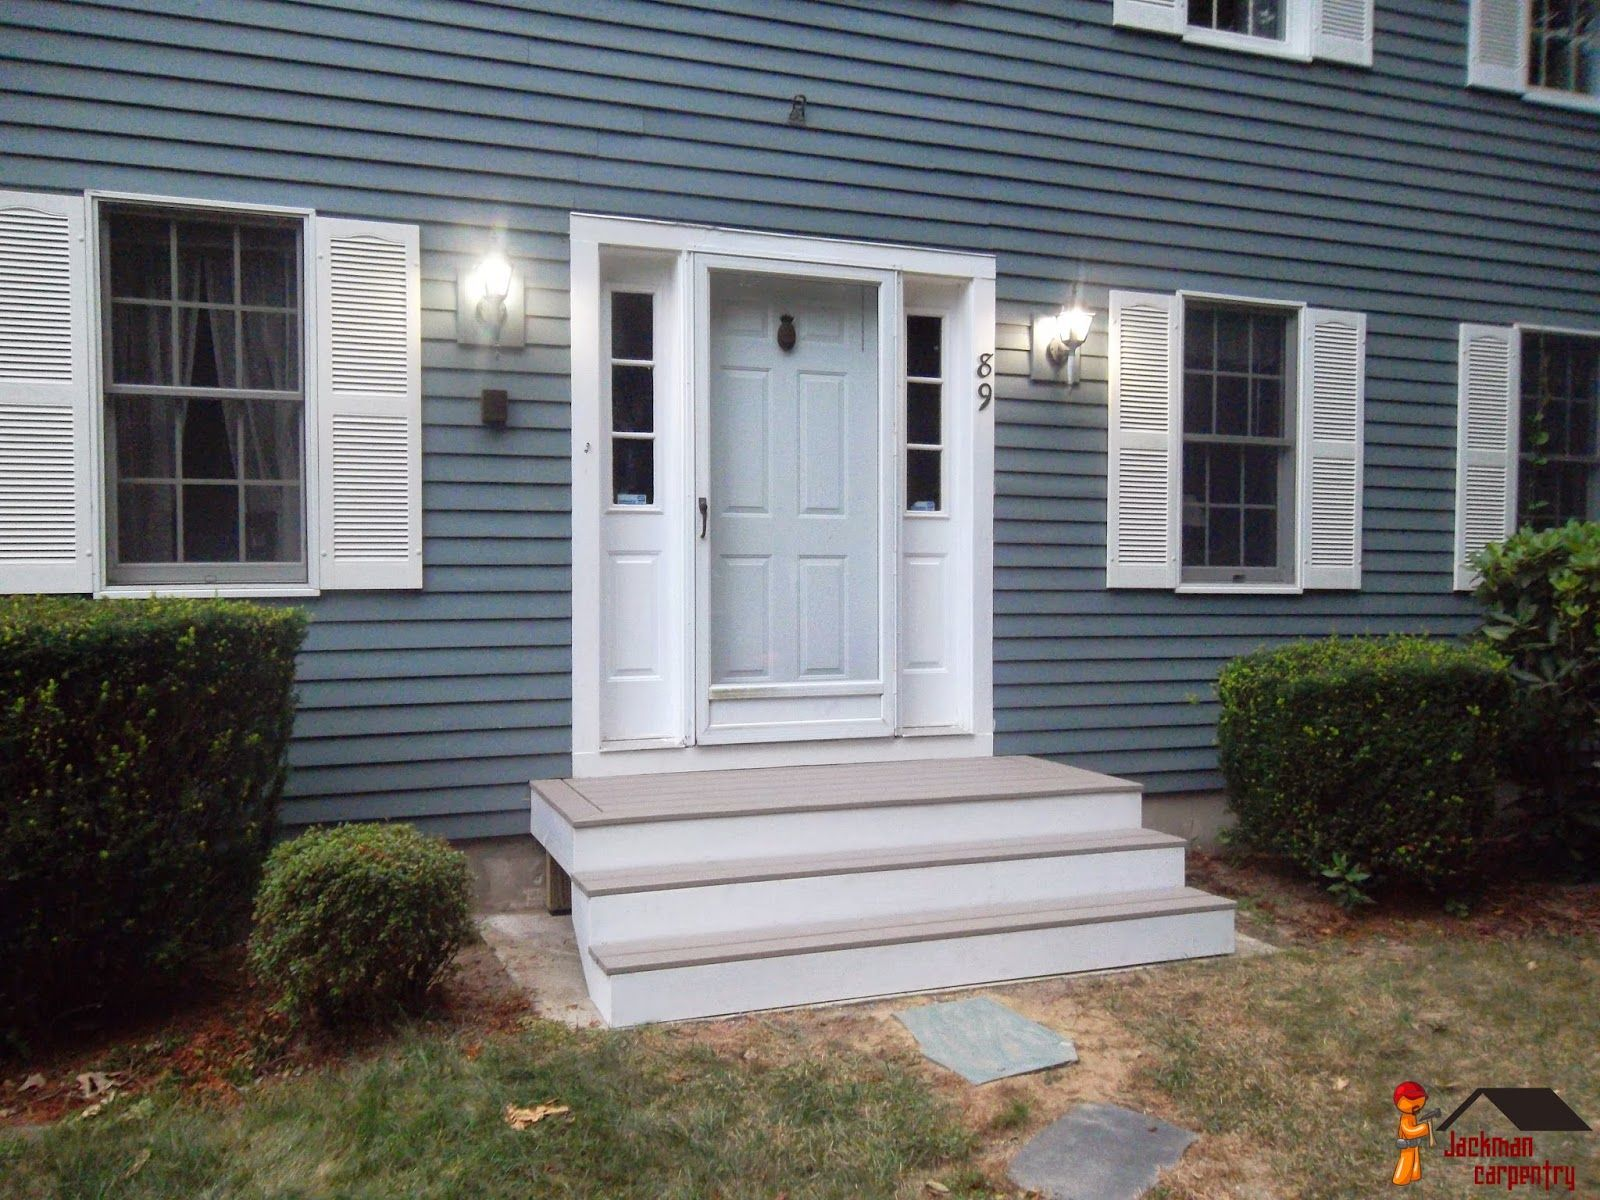 Front Door Step front door entry steps with composite decking and pvc trim wrapped